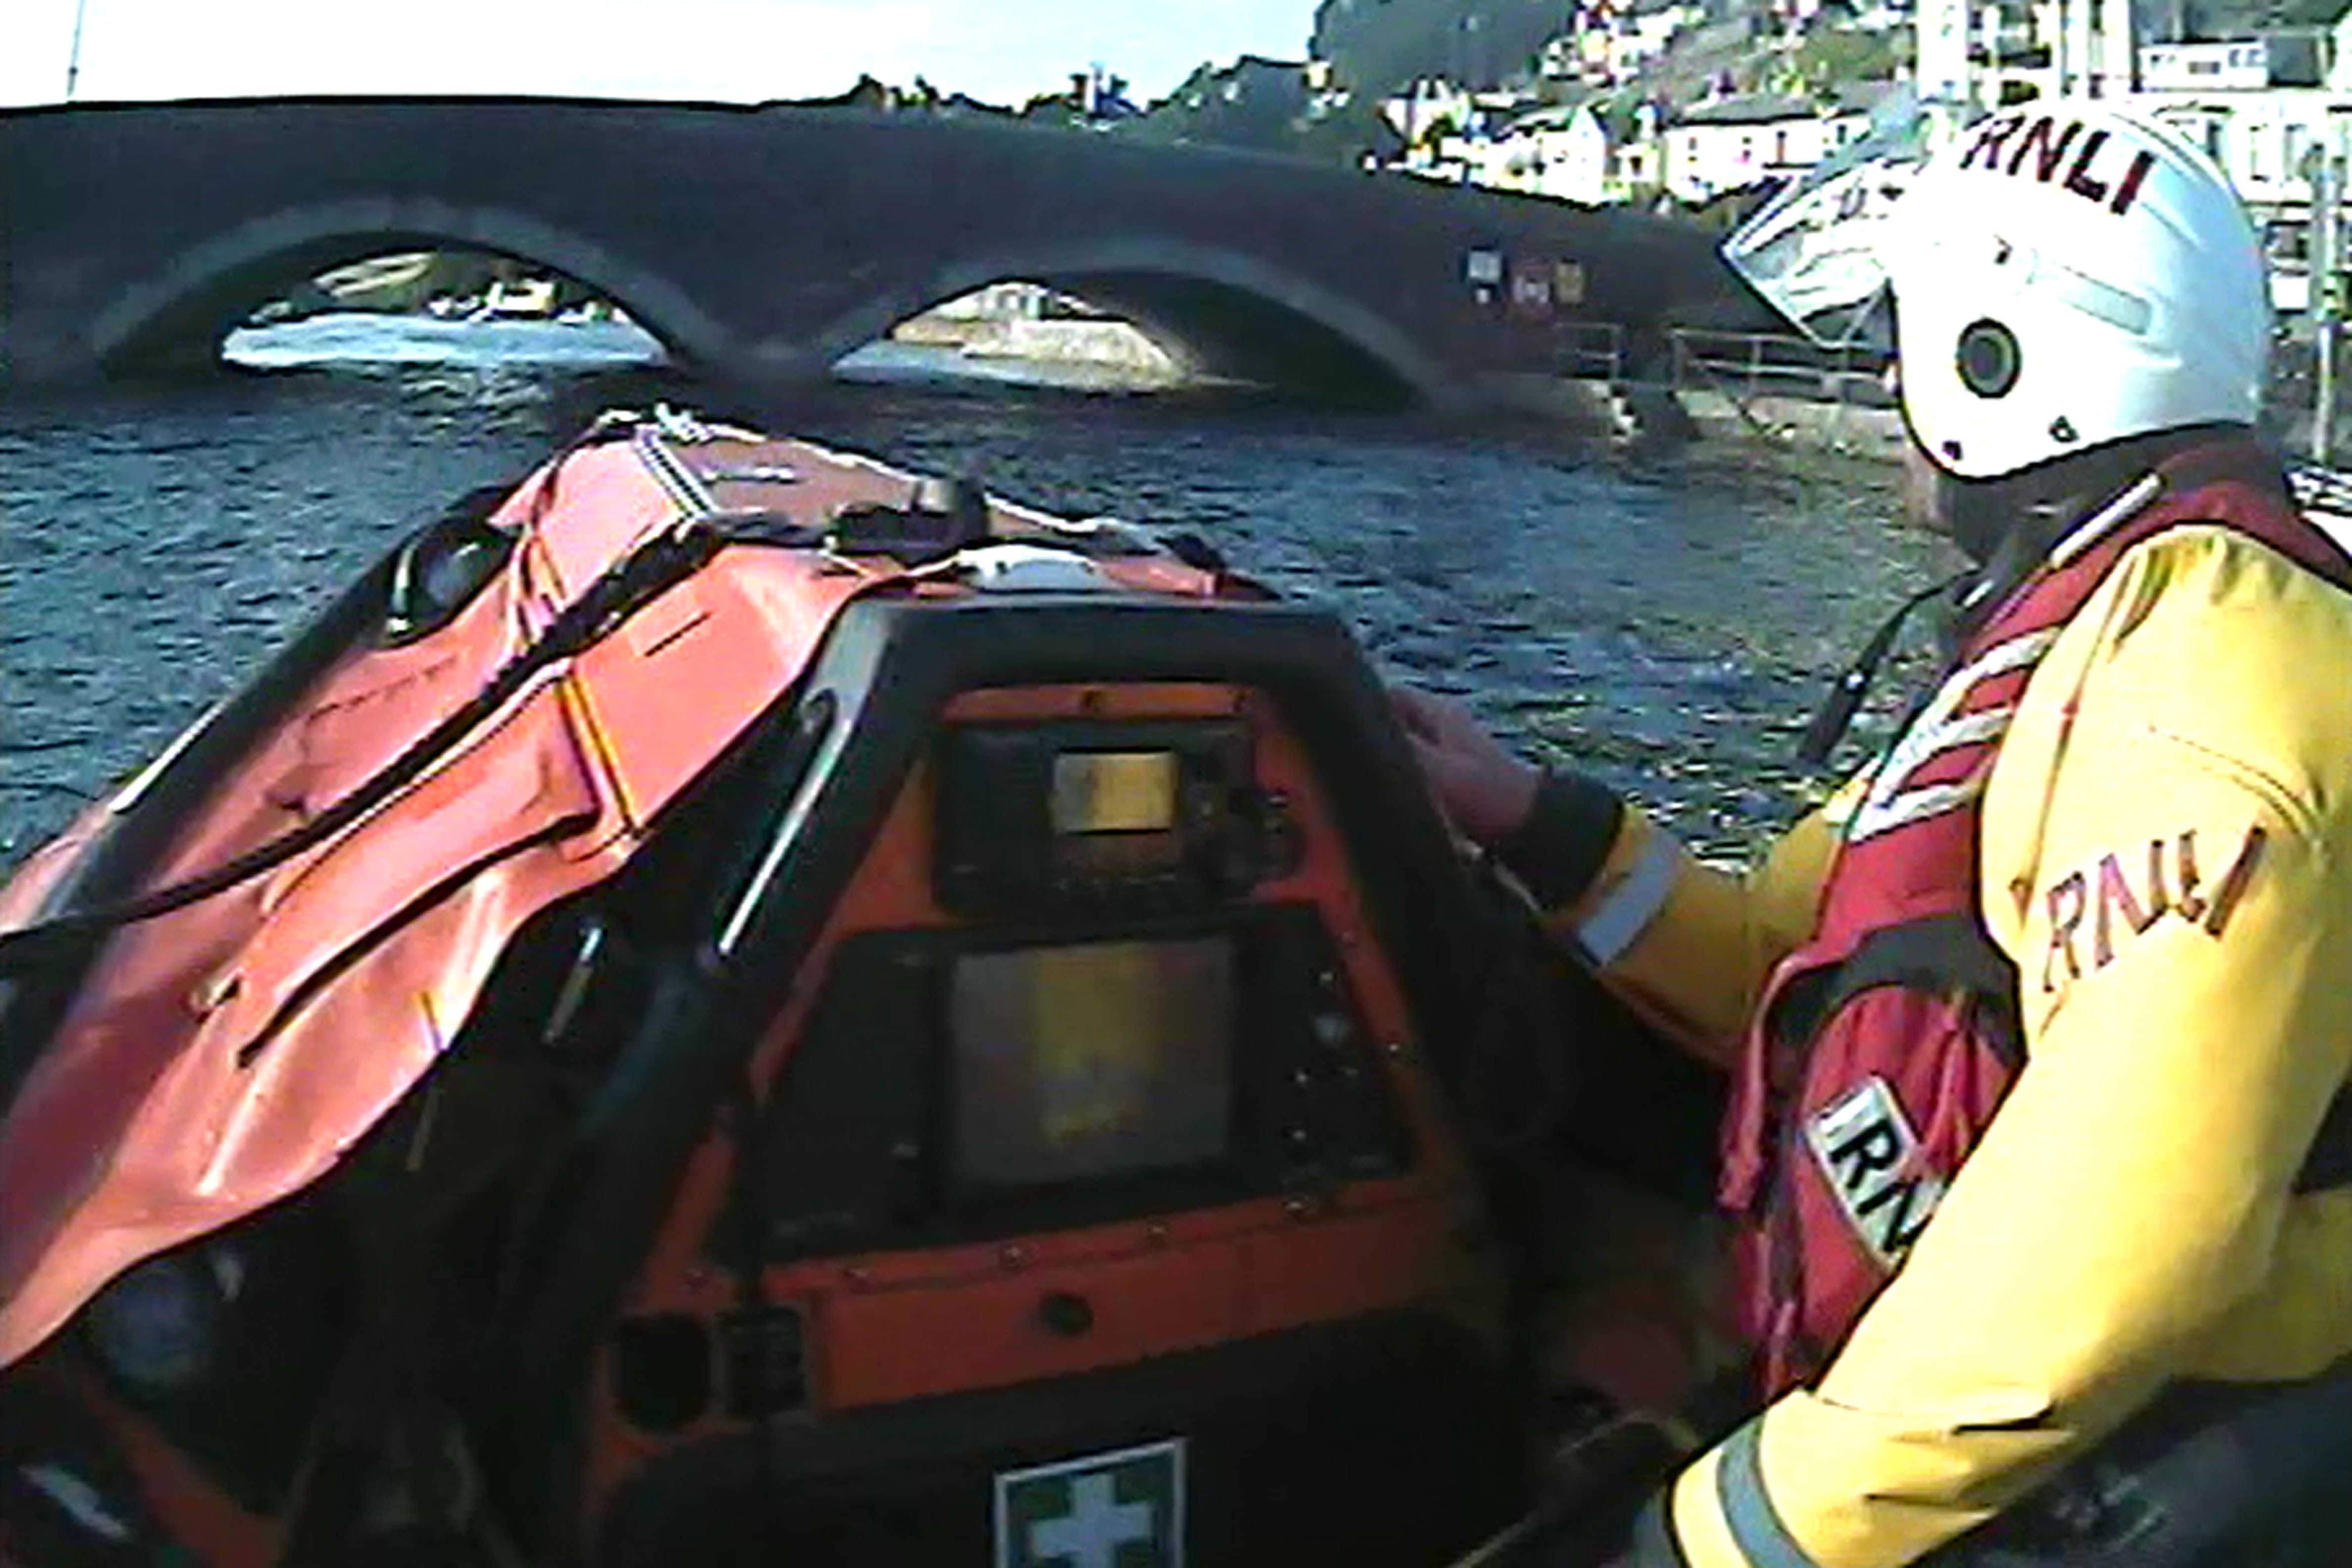 Looe RNLI's D Class inshore lifeboat Ollie Naismith heading up river towards the casualty